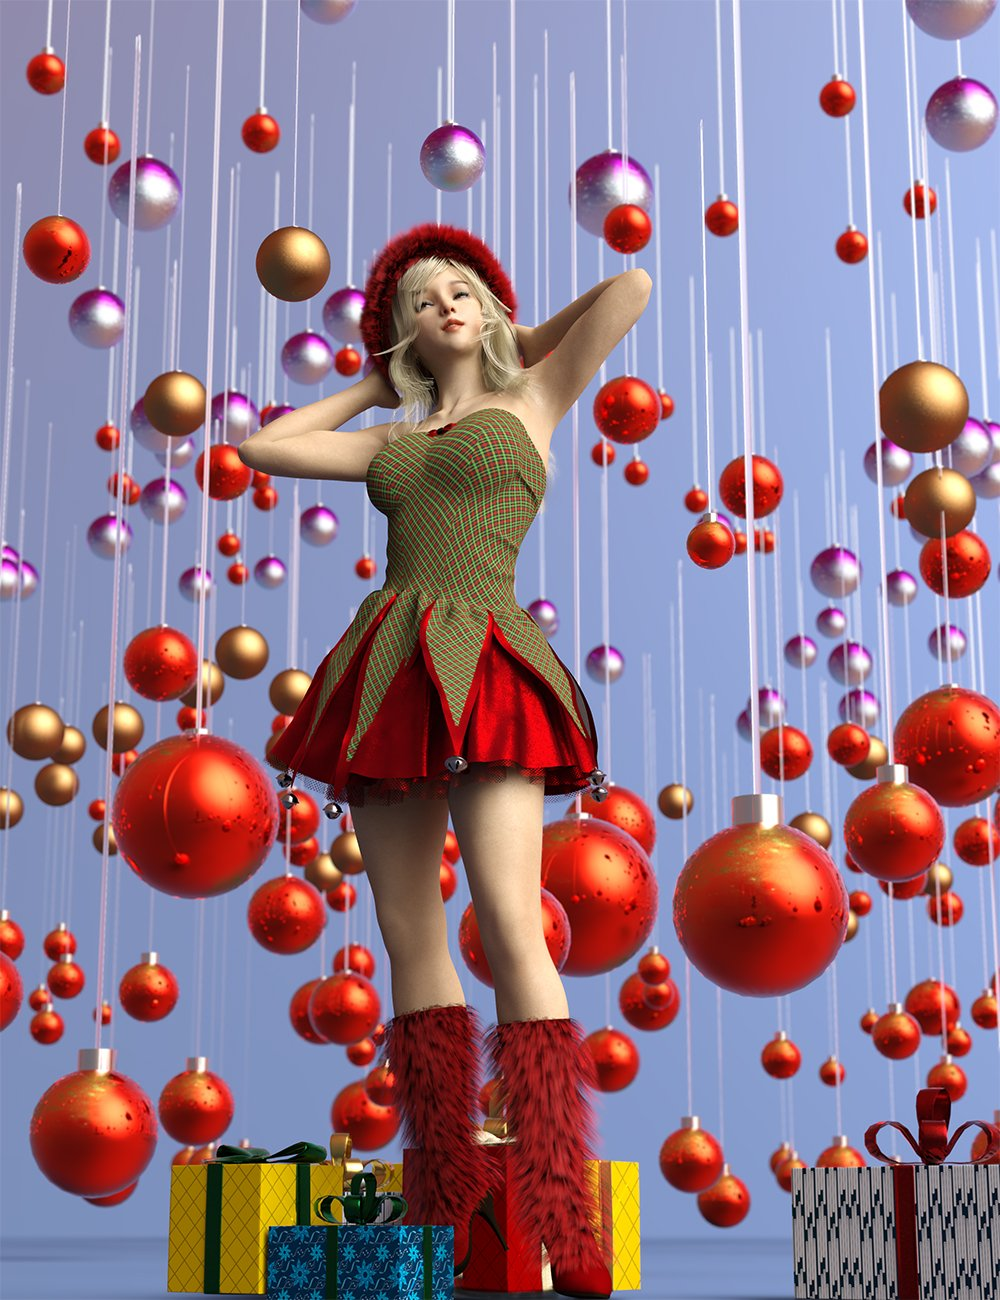 Festive Balls – Low Res Decorations and Shaders_DAZ3D下载站